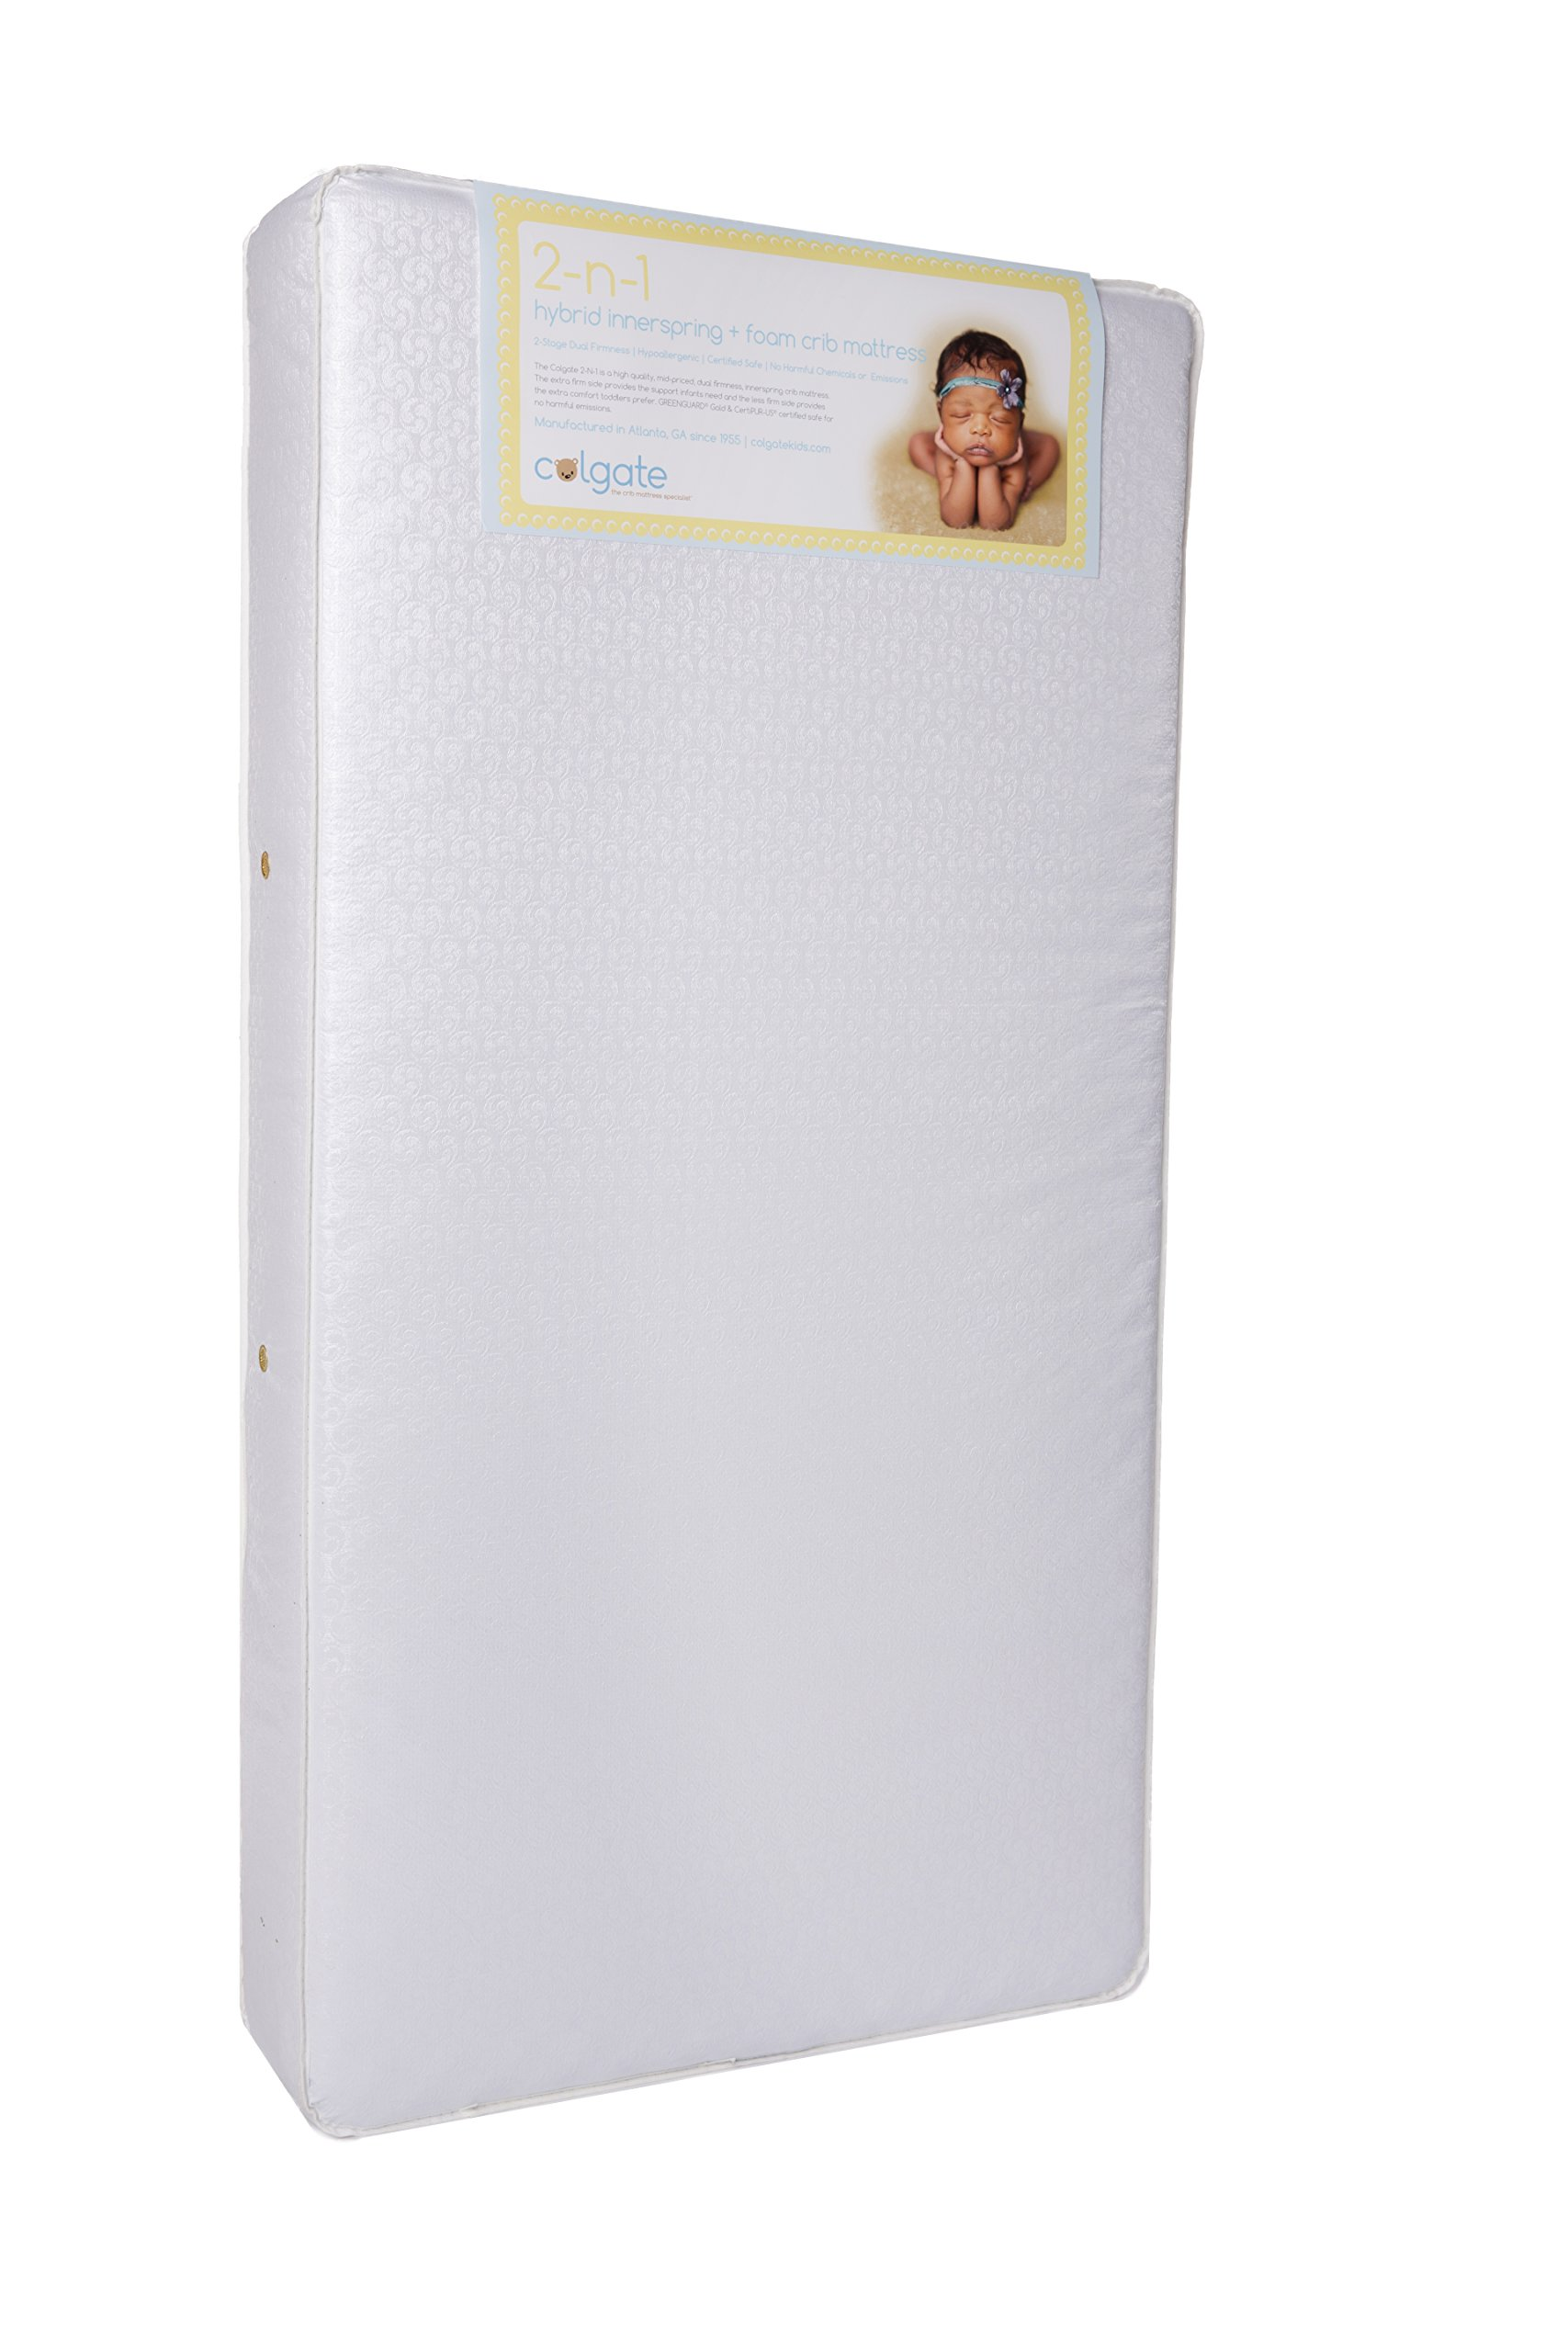 Colgate 2-N-1 Orthopedic Crib and Toddler Mattress - 51.6'' L x 27.2'' W x 6'' H, Innerspring Duel Firmness with Waterproof Cover, Hypoallergenic, Made in The USA by Colgate